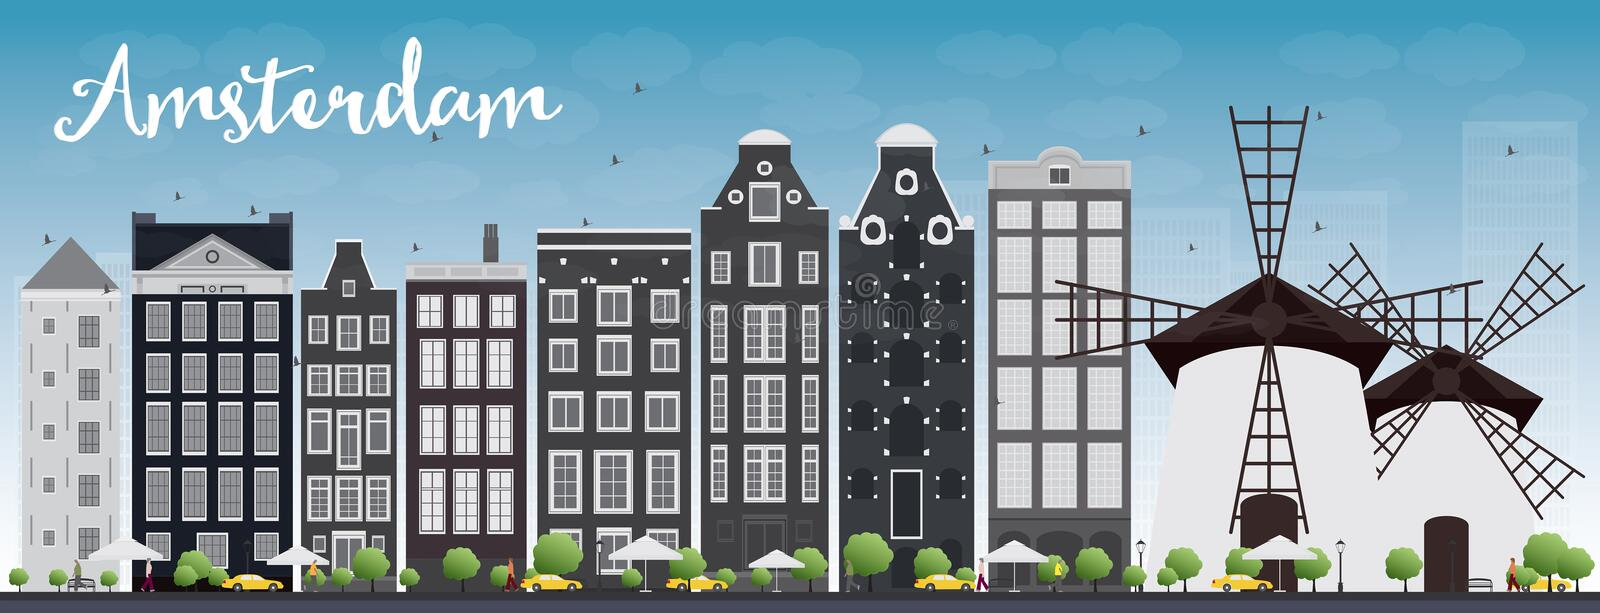 Amsterdam city skyline with grey buildings and blue sky. Vector illustration. Business travel and tourism concept with historic buildings. Image for royalty free illustration